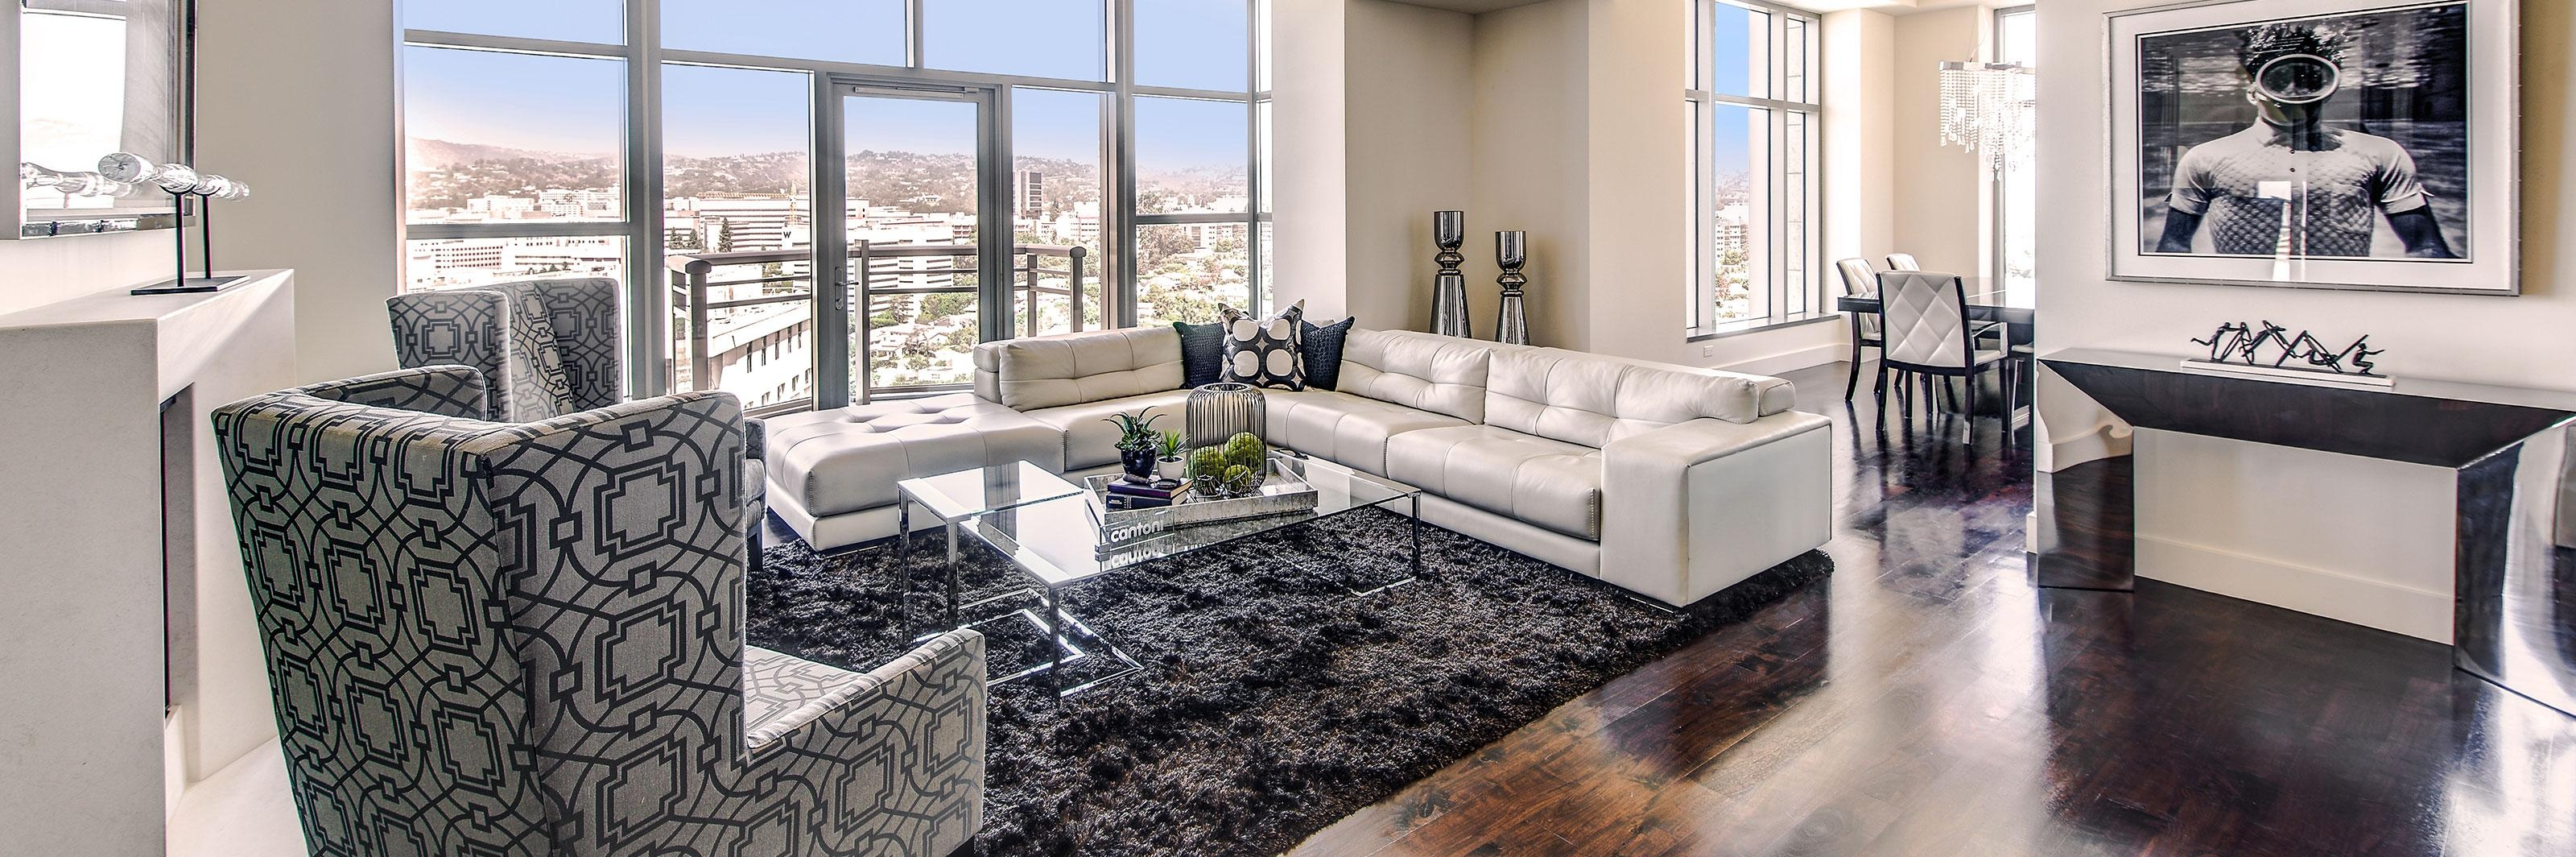 The Cantoni Home At The Carlyle Residences | Cantoni Los Angeles Intended For Cantoni Sofas (Image 19 of 20)